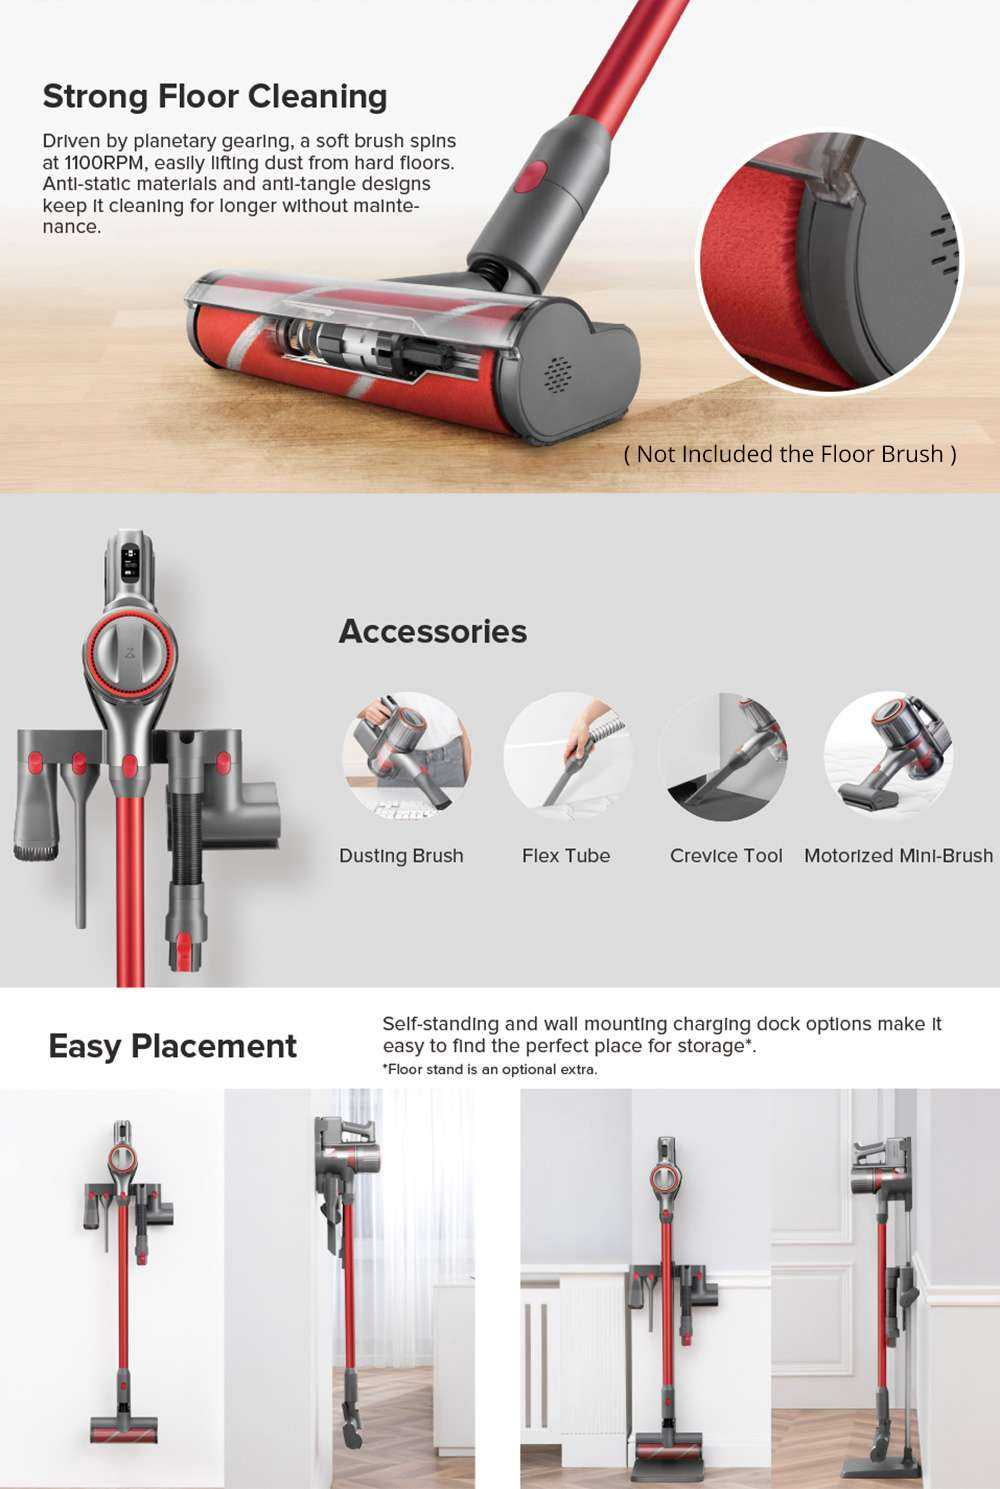 Roborock H6 Portable Wireless Handheld Vacuum Cleaner 150AW Strong Suction 420W Brushless Motor 3610mAh Battery OLED Display International Version - Space Silver